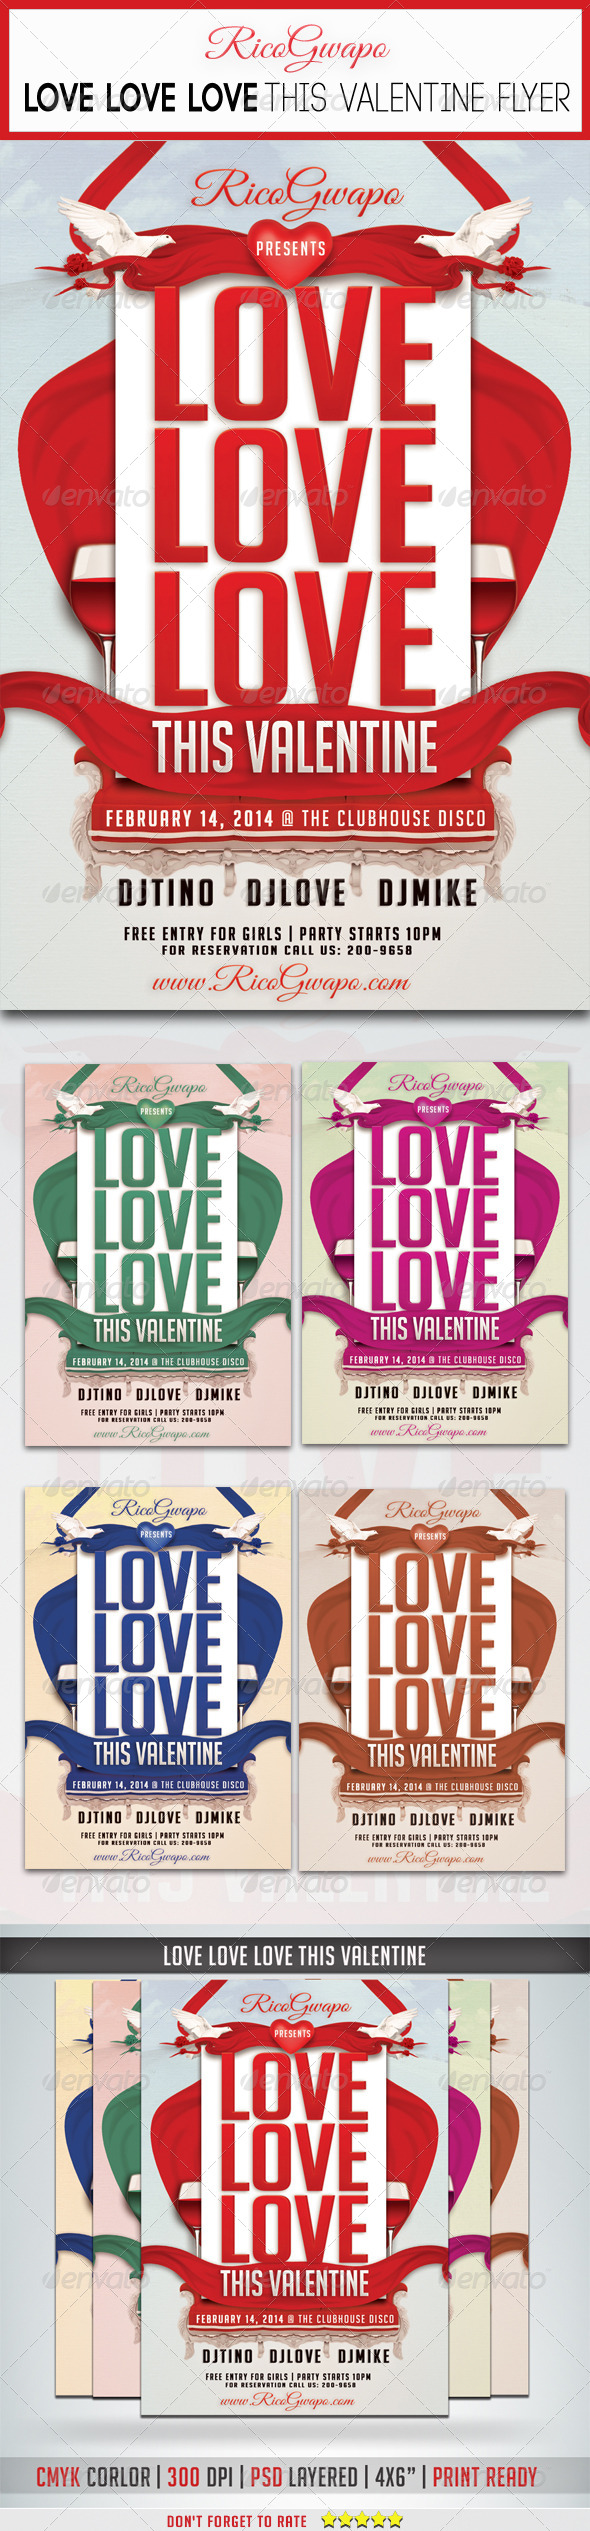 Love Love Love This Valentine Flyer Template - Flyers Print Templates